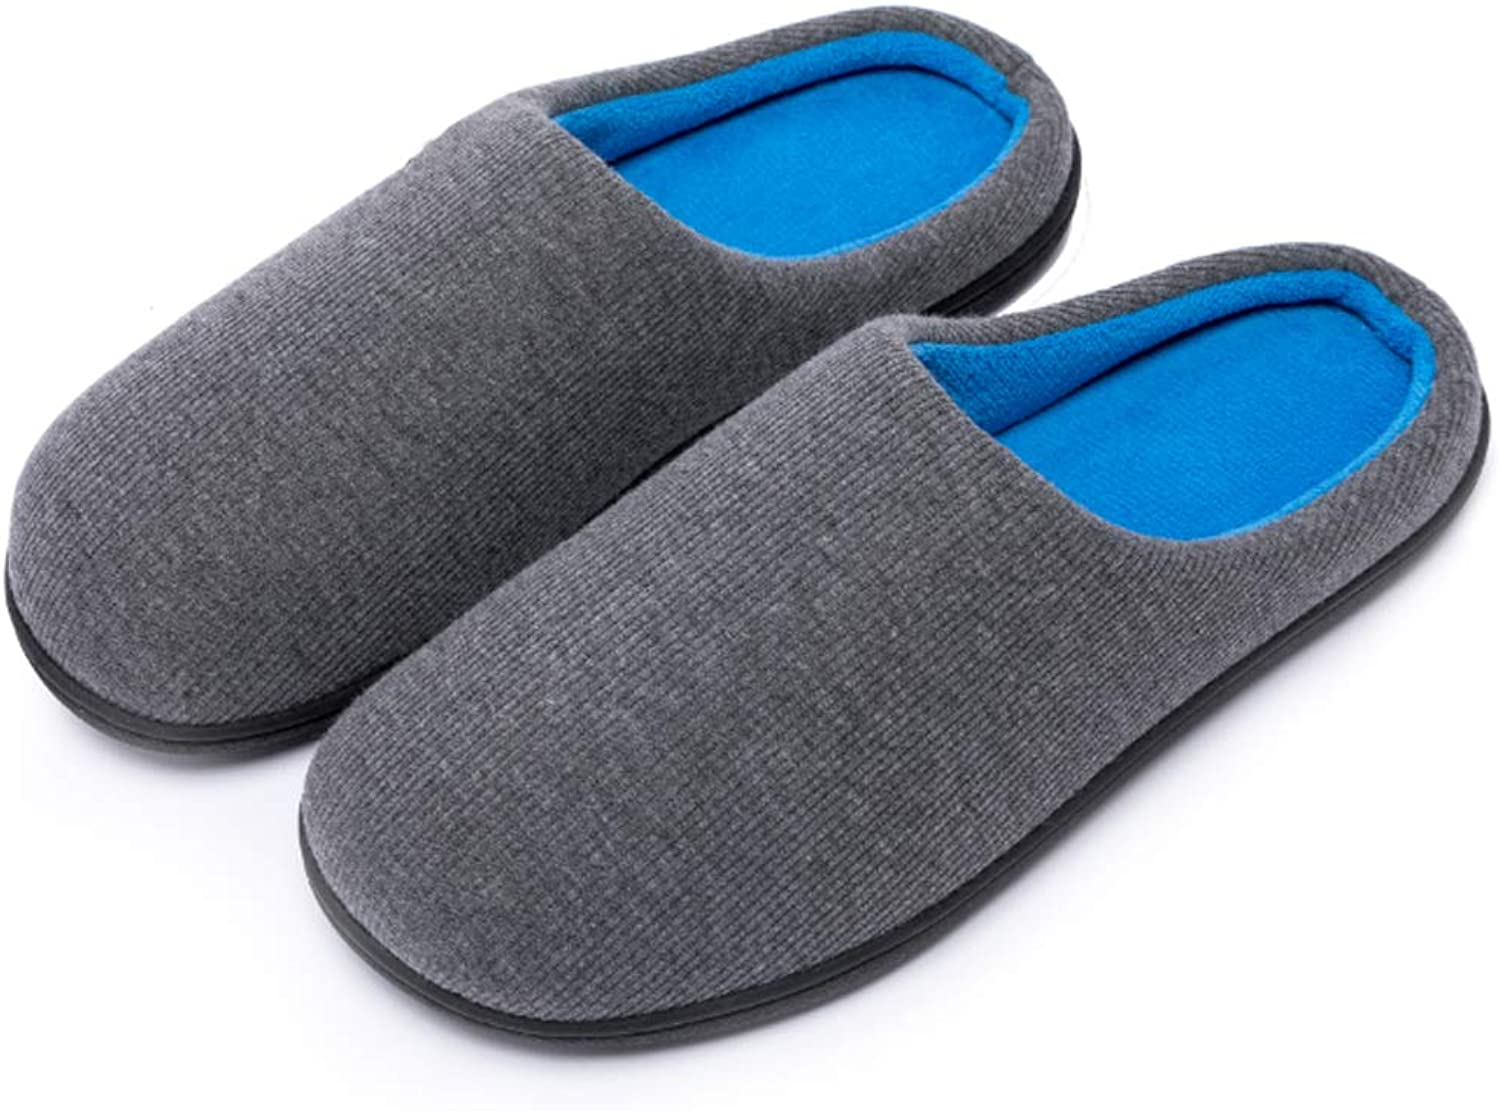 Kuzima Men's and Women's Memory Foam Slippers Indoor Outdoor Anti-Slip House shoes Two-Tone Cozy Plush Fleece Lined